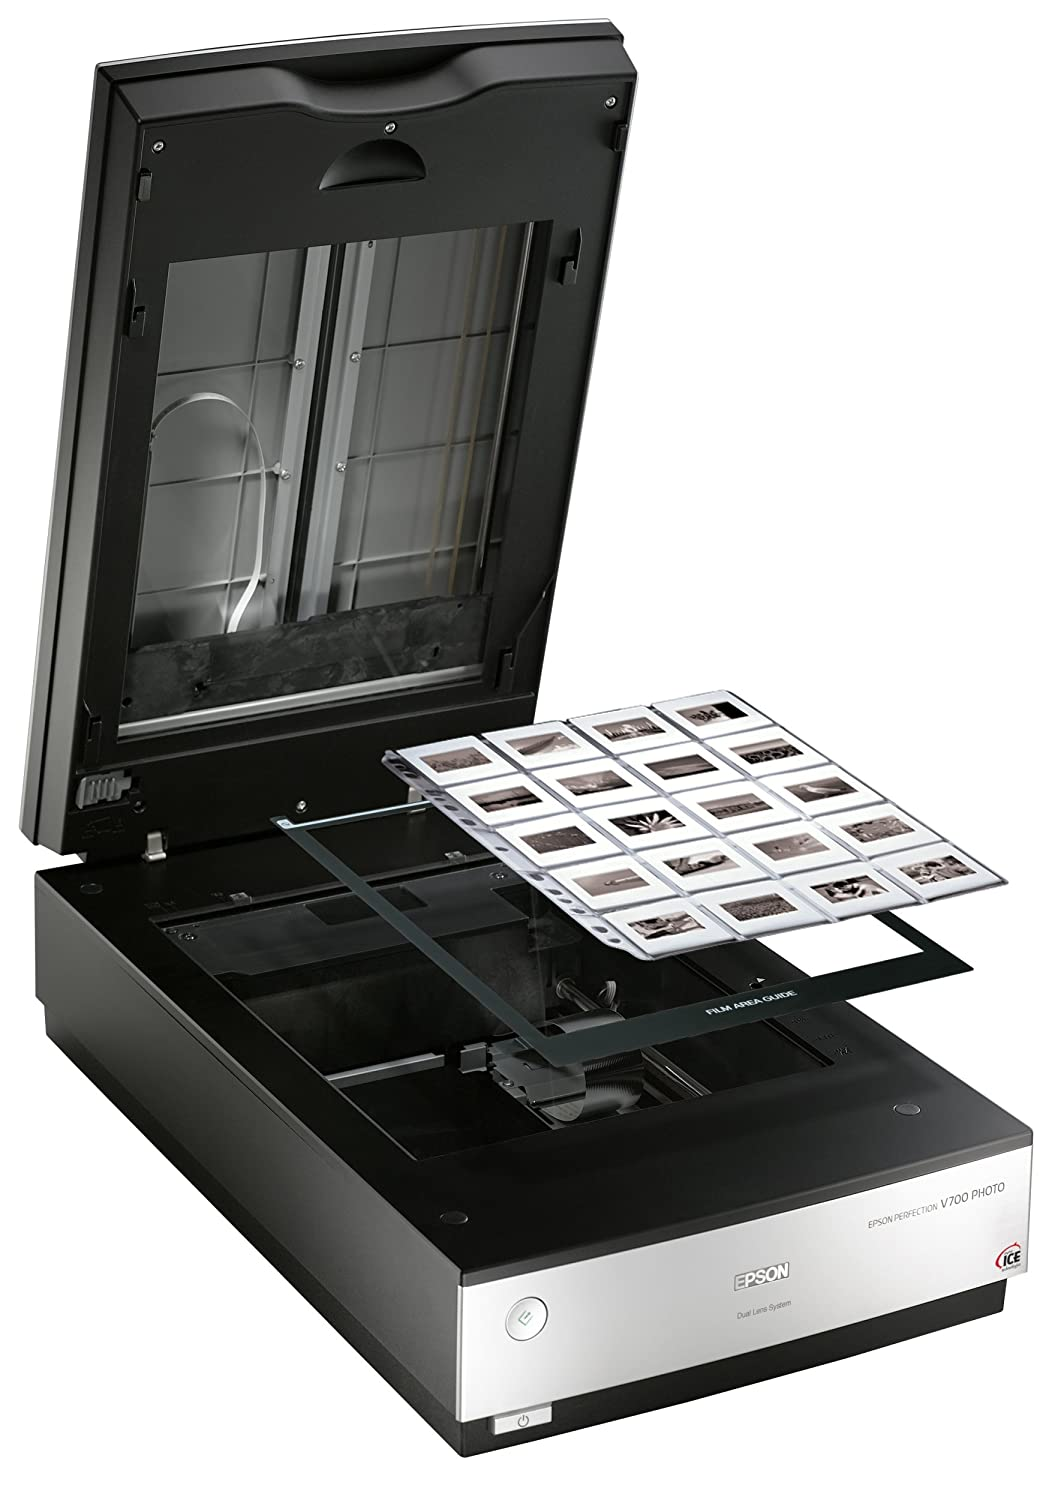 Epson Perfection V700 Photo Scanner - geöffnet mit Dias